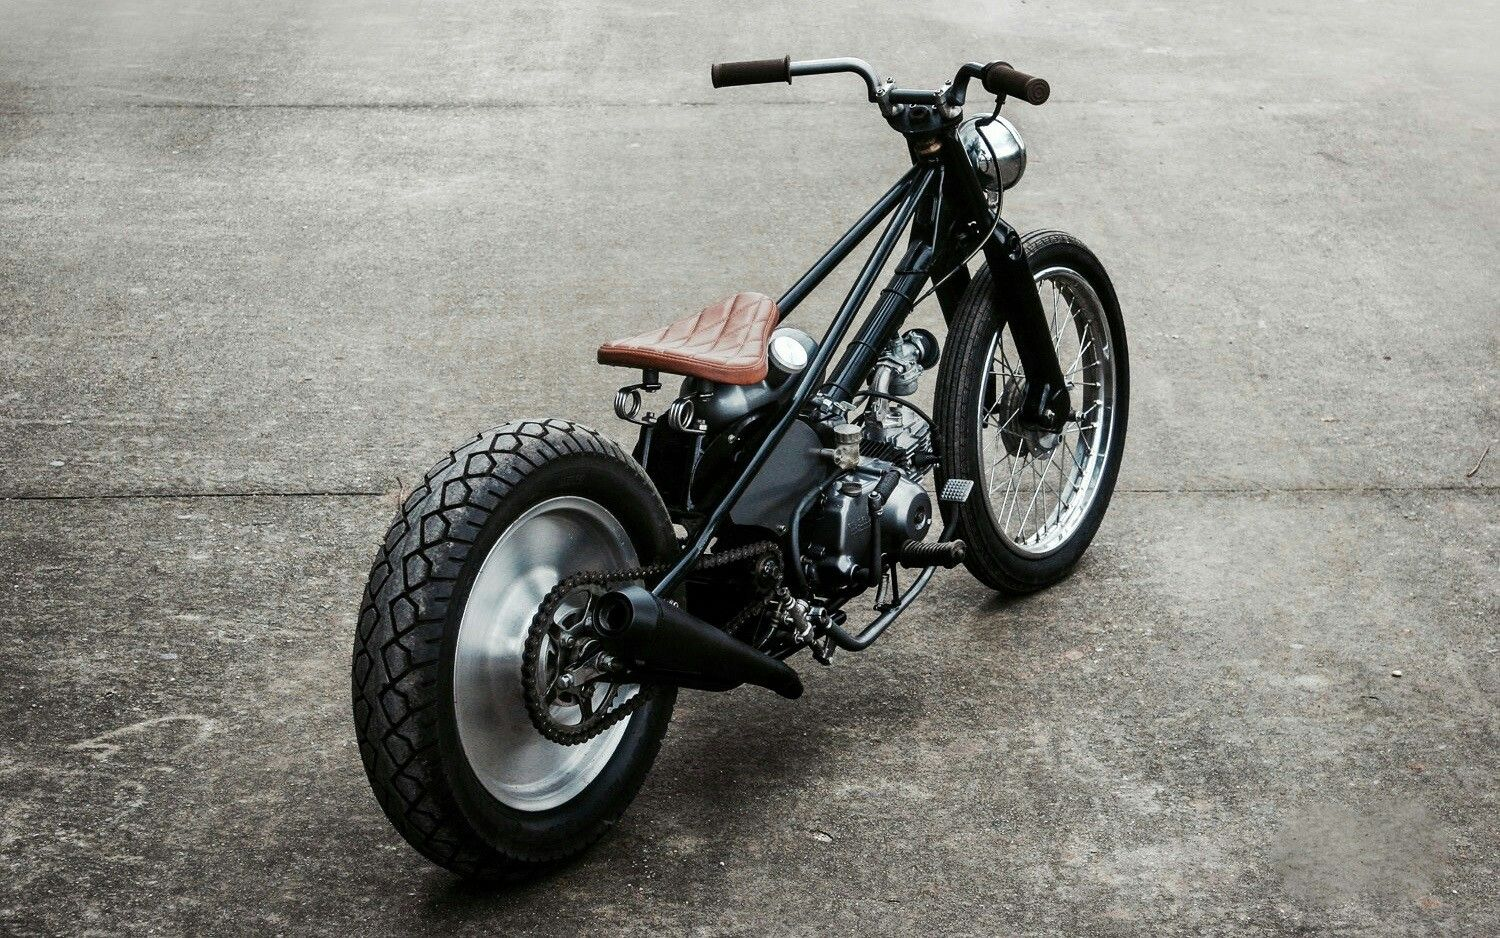 Custom rigid Honda Super Cub by Duong Doan | One-off frame ...